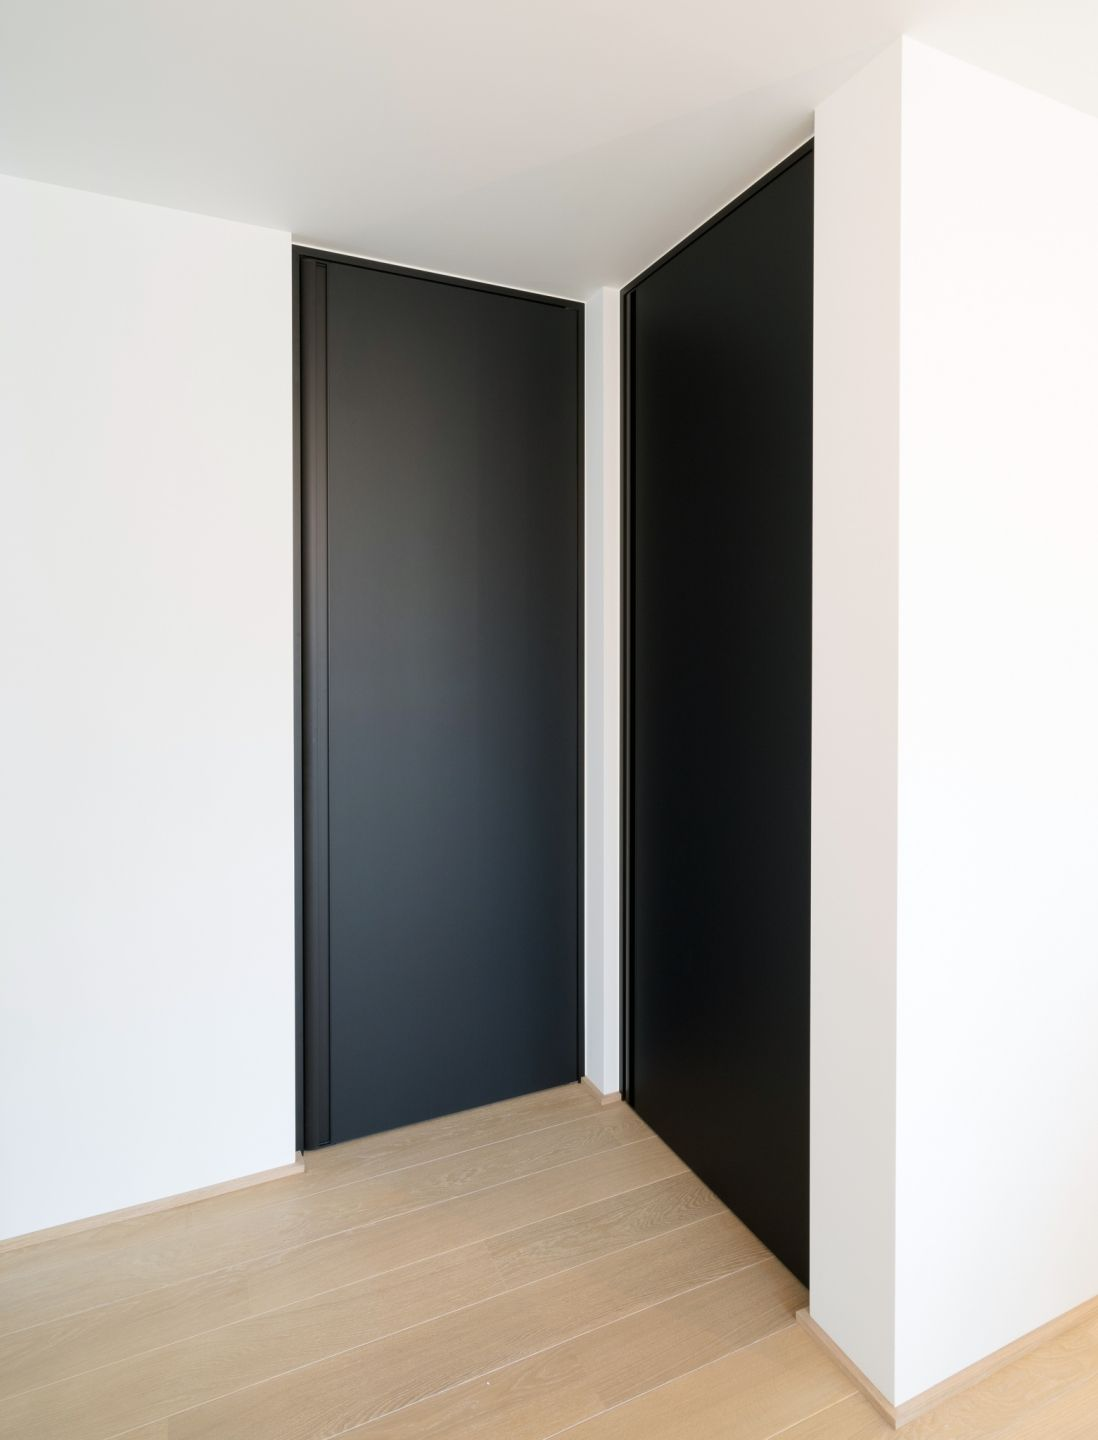 Modern Interior Doors Ideas 14: Modern Black Interior Doors From Floor To Ceiling With An